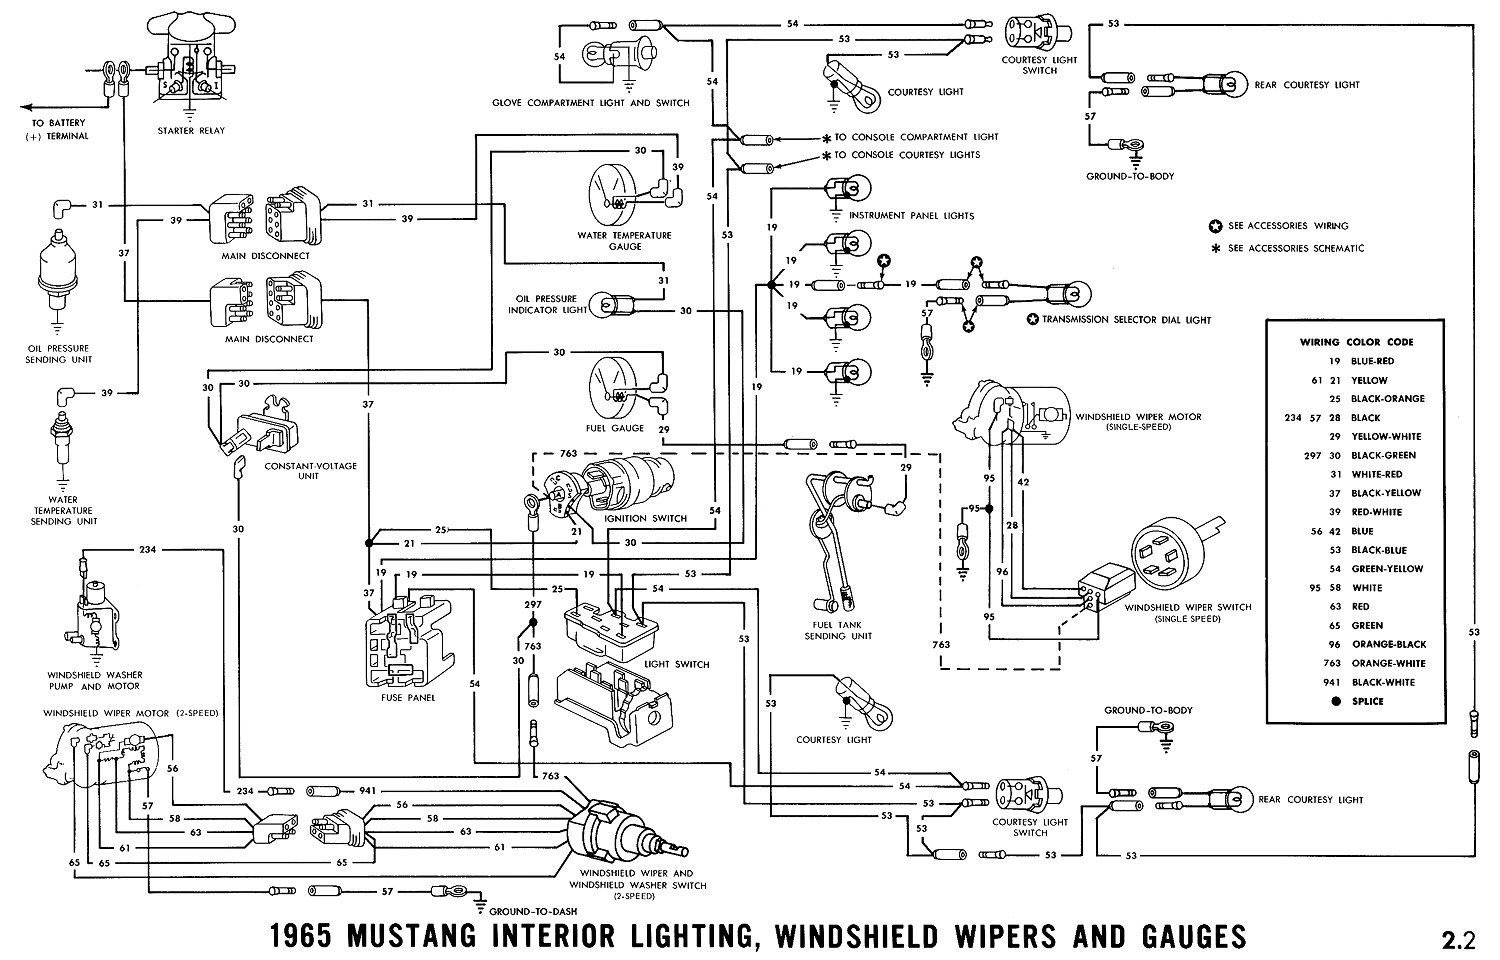 1965g 65 mustang wiring diagram 1965 mustang alternator wiring \u2022 wiring 65 mustang alternator wiring diagram at gsmx.co